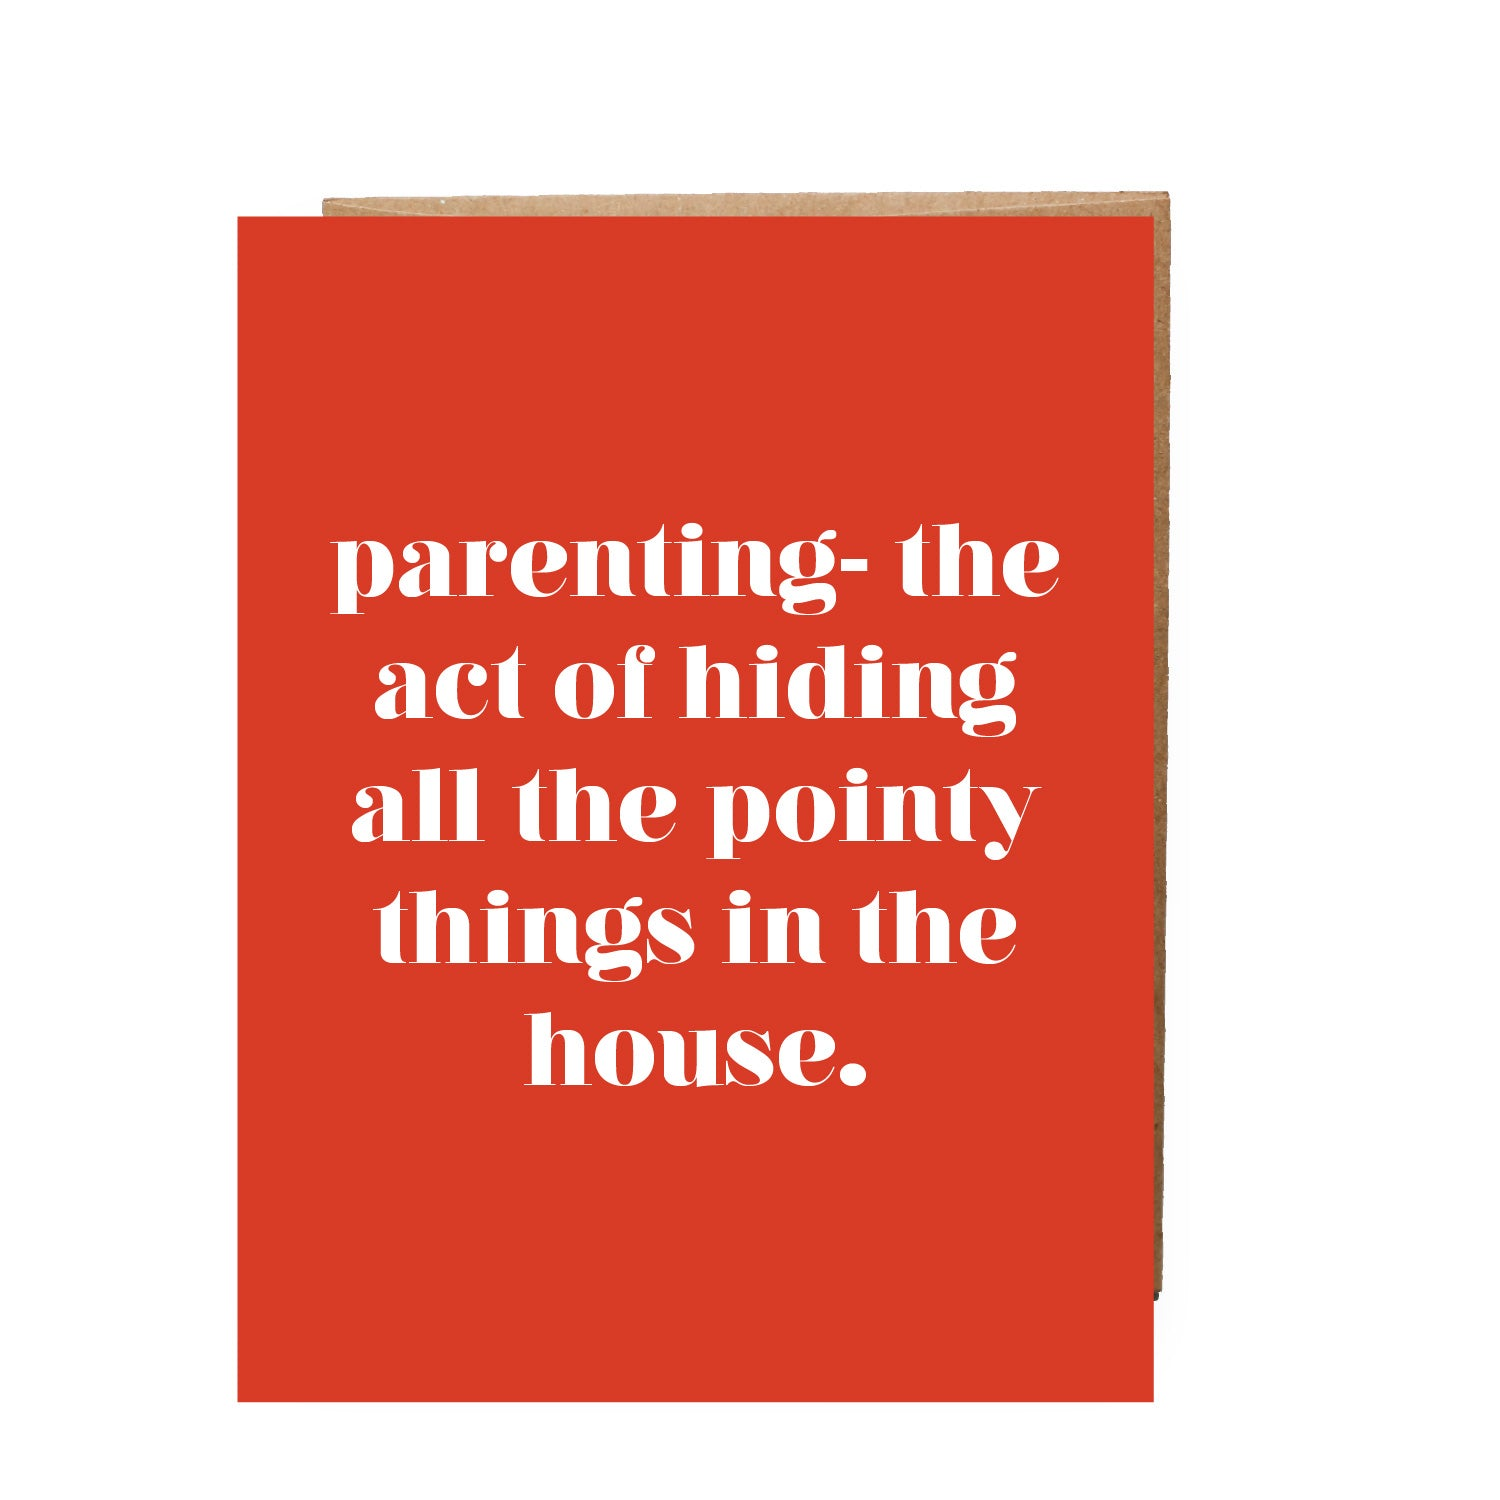 Parenting - Hiding All The Pointy Things